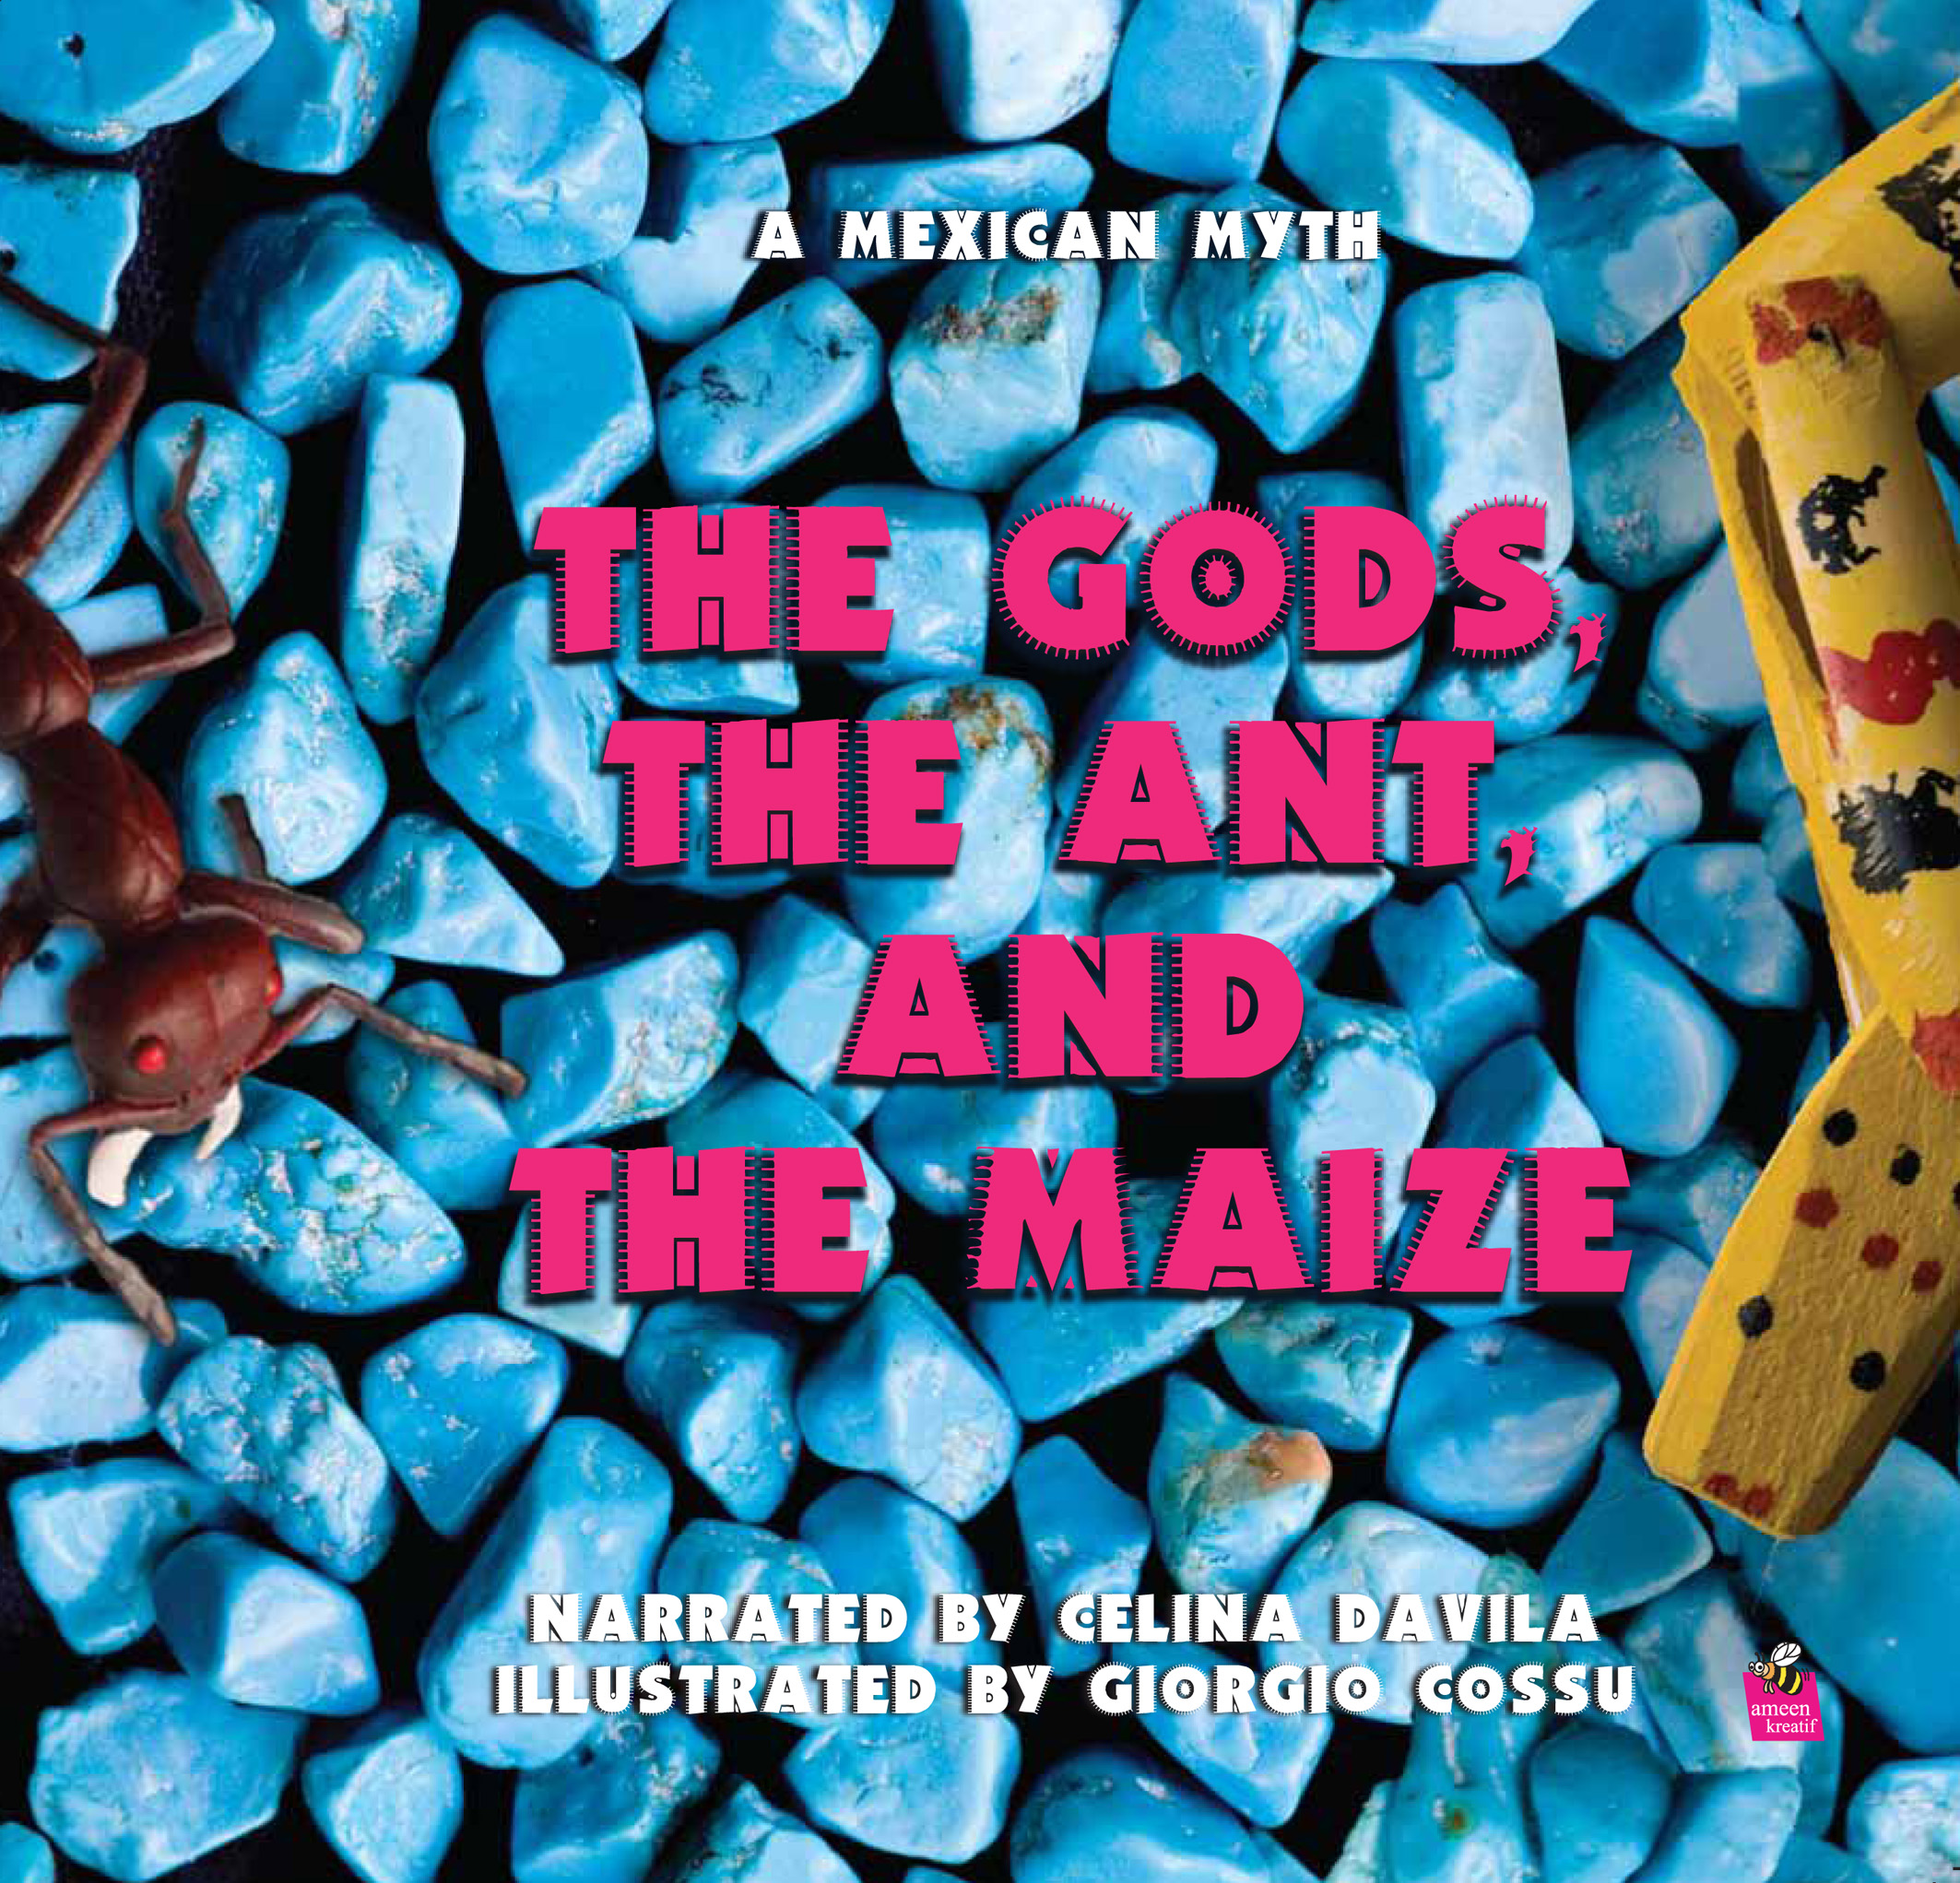 book-cover-the-gods-the-ant-and-the-maize-copy.jpg